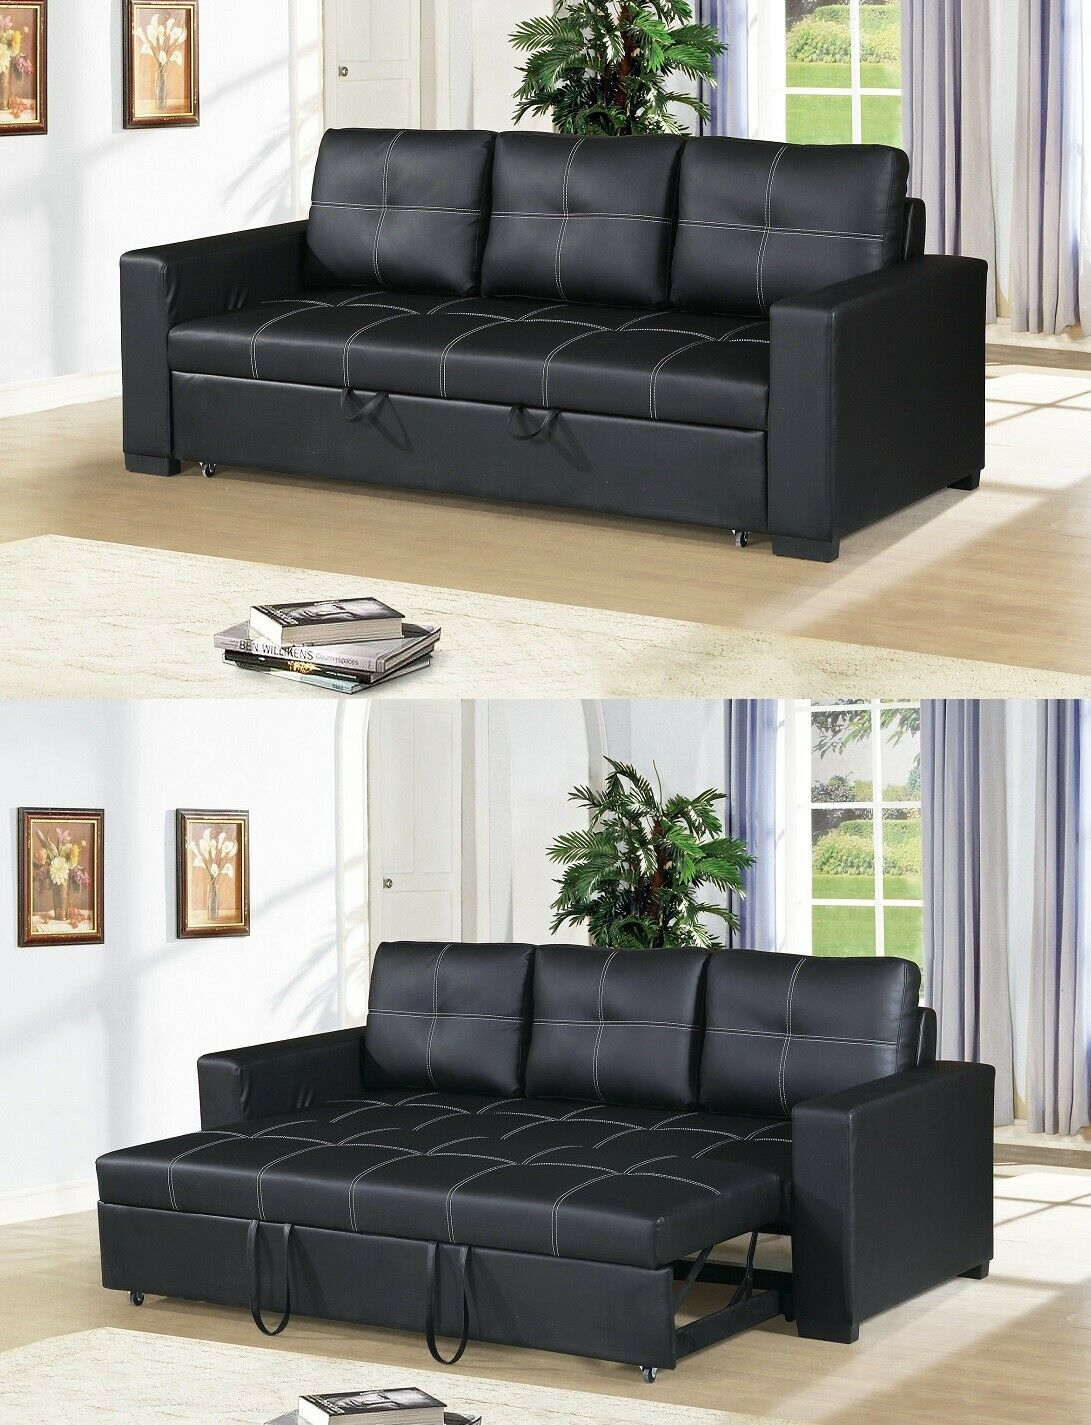 Picture of: Small Space Convertible Sofa Bed Fuax Leather Black Plush Couch Comfort Modern For Sale Online